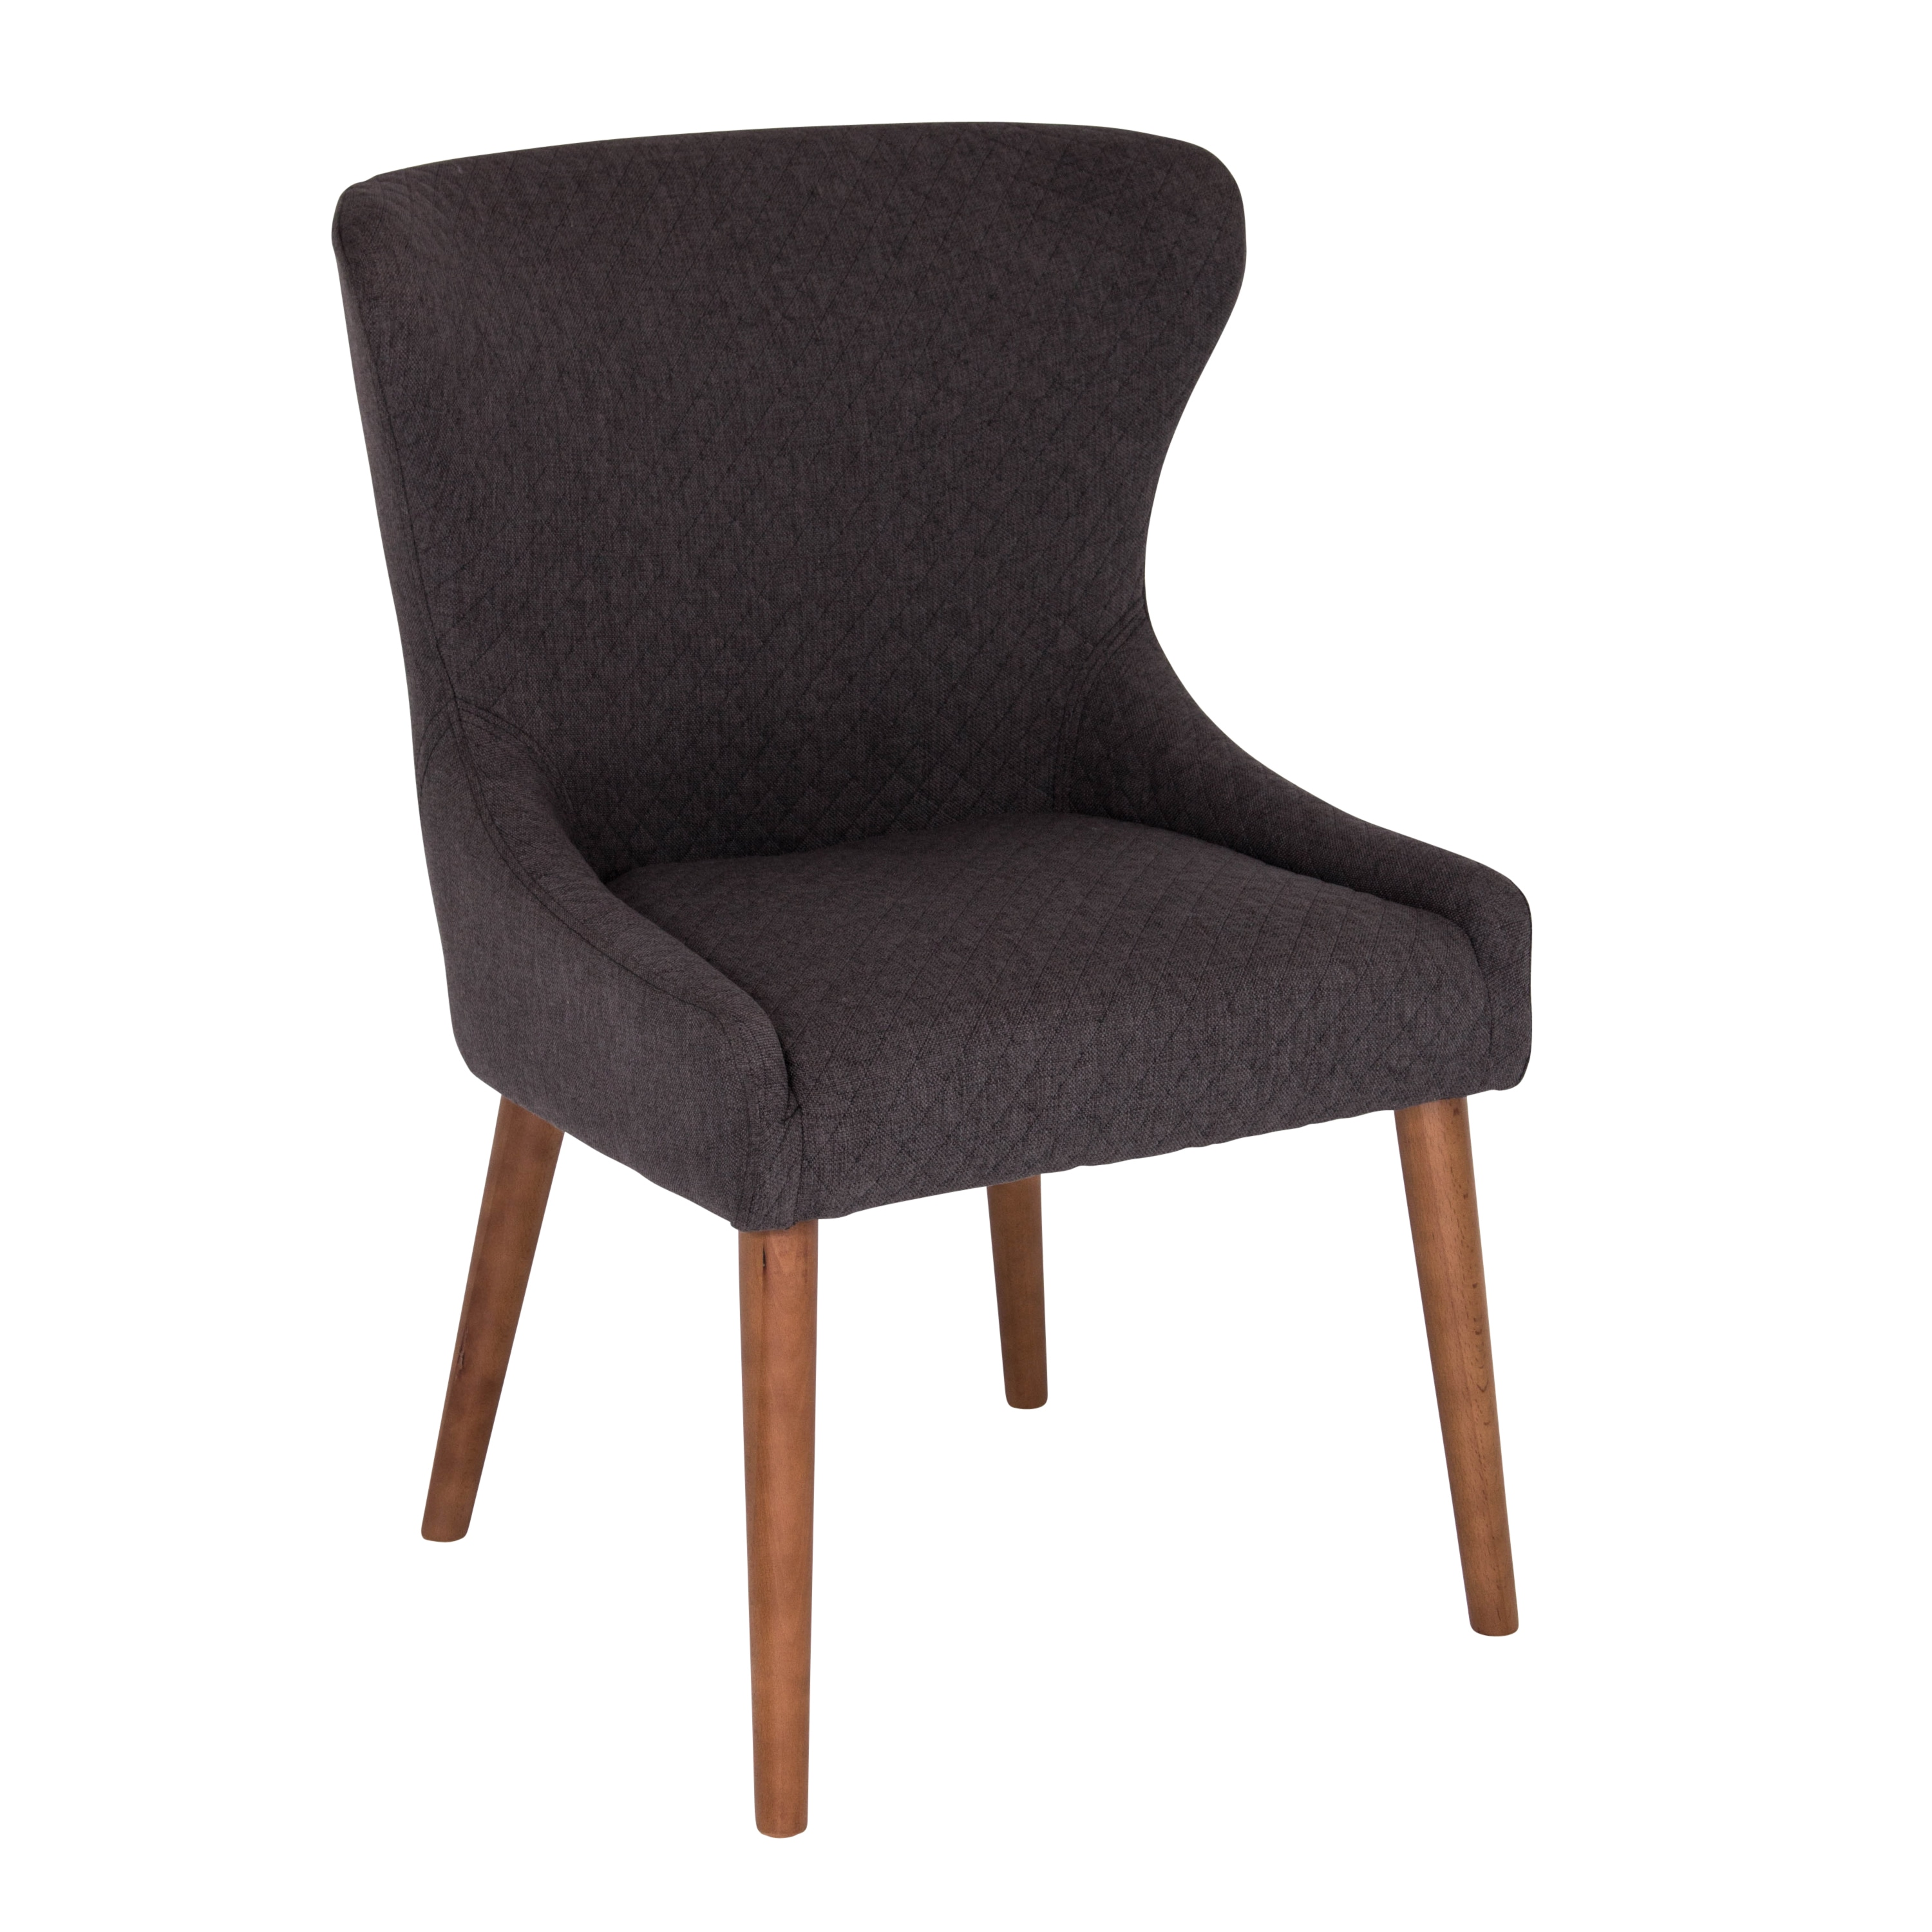 Lumisource Bianca Side Chair by LumiSource